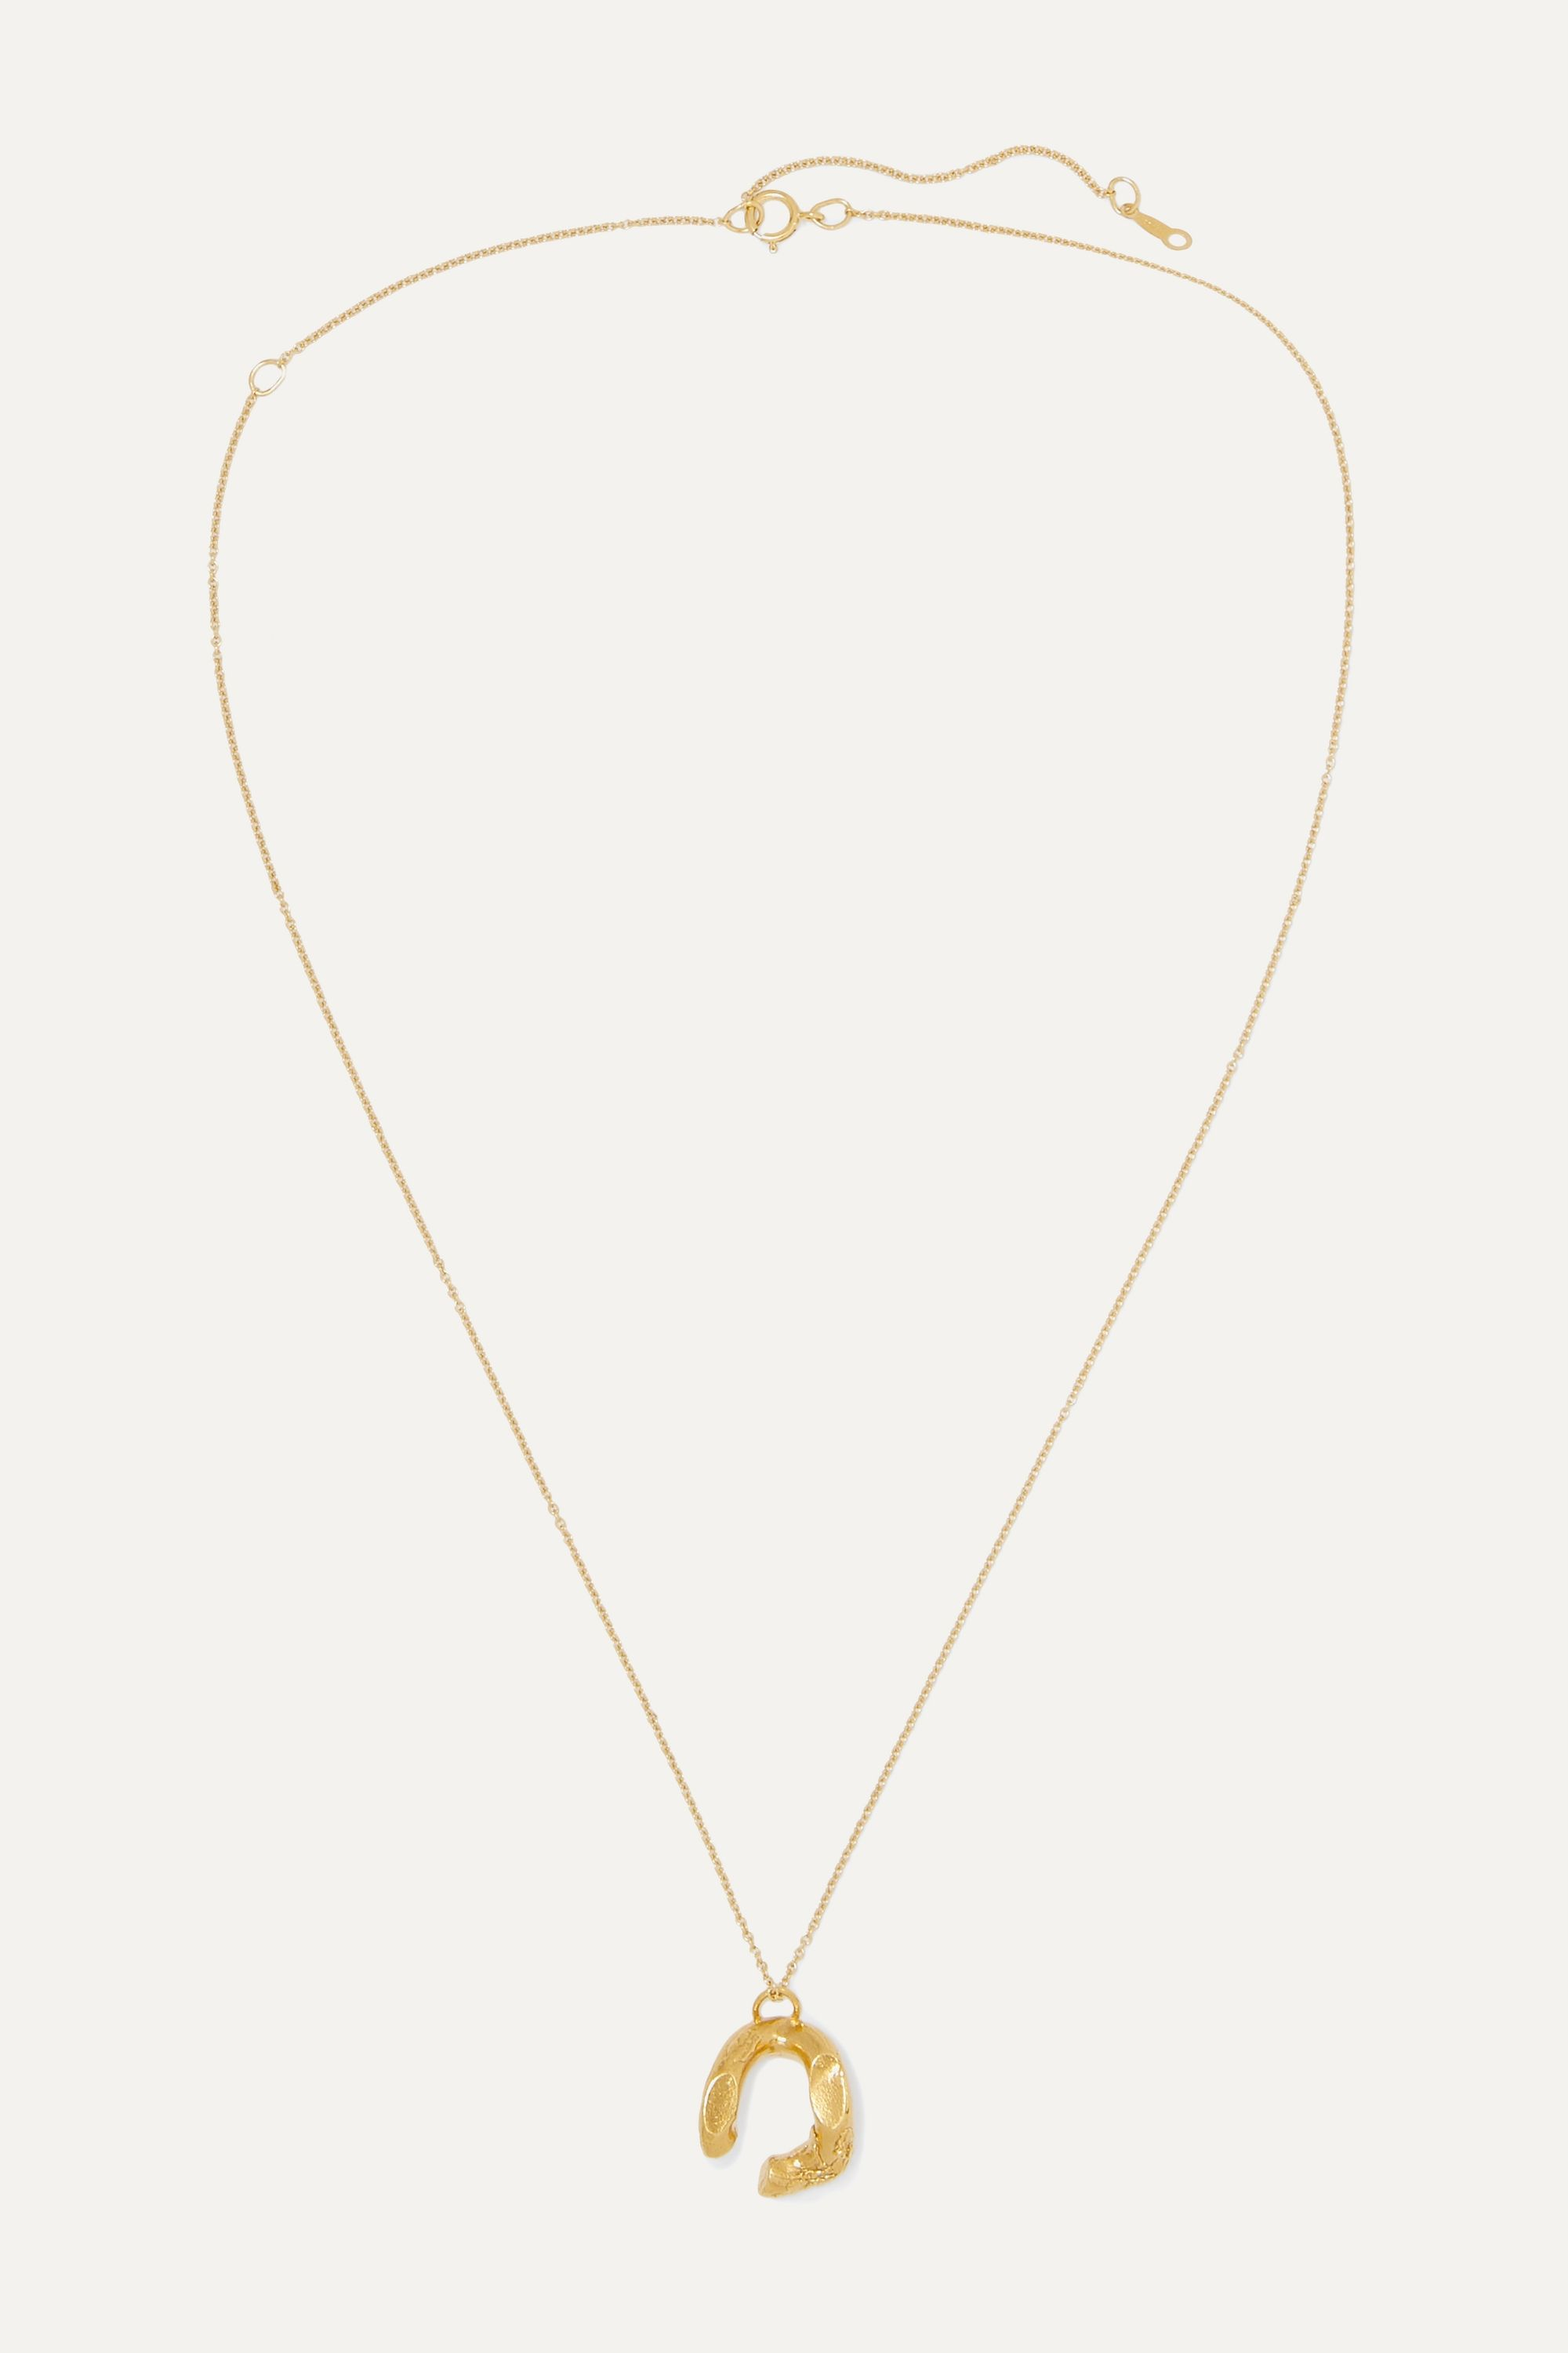 Alighieri The Flashback gold-plated necklace